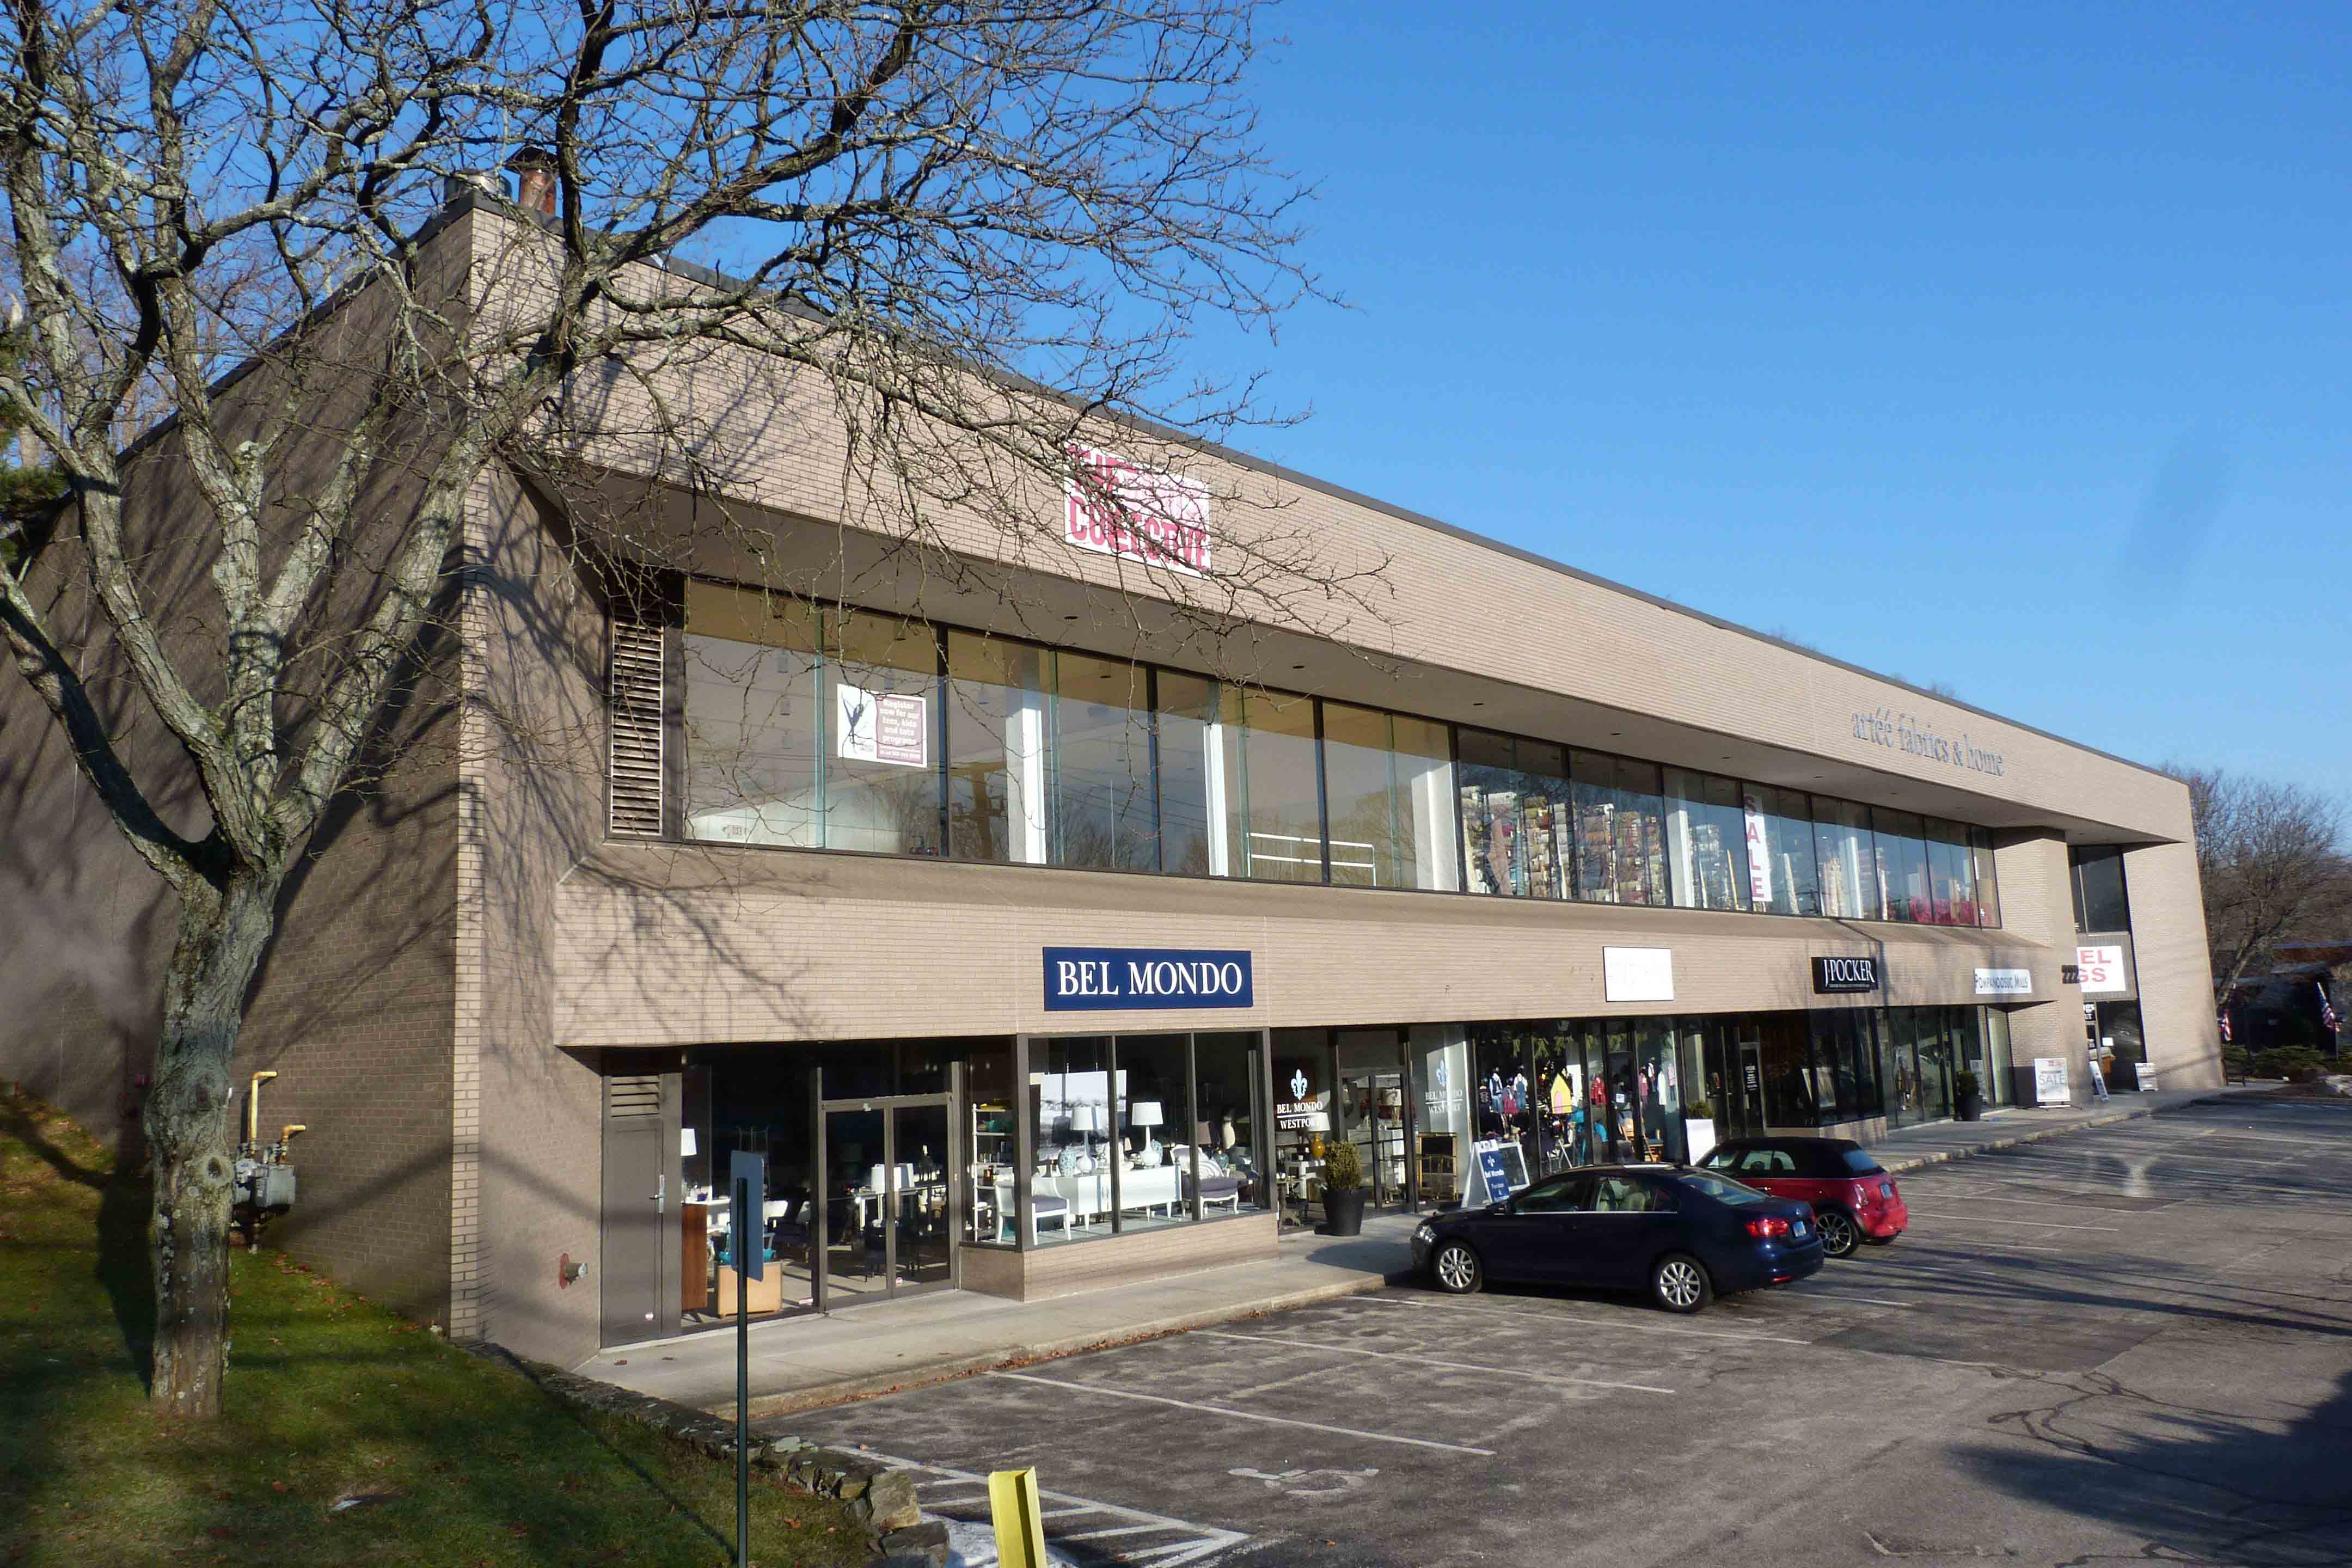 Hk group sells 222 post road west in westport for for Single story commercial building design